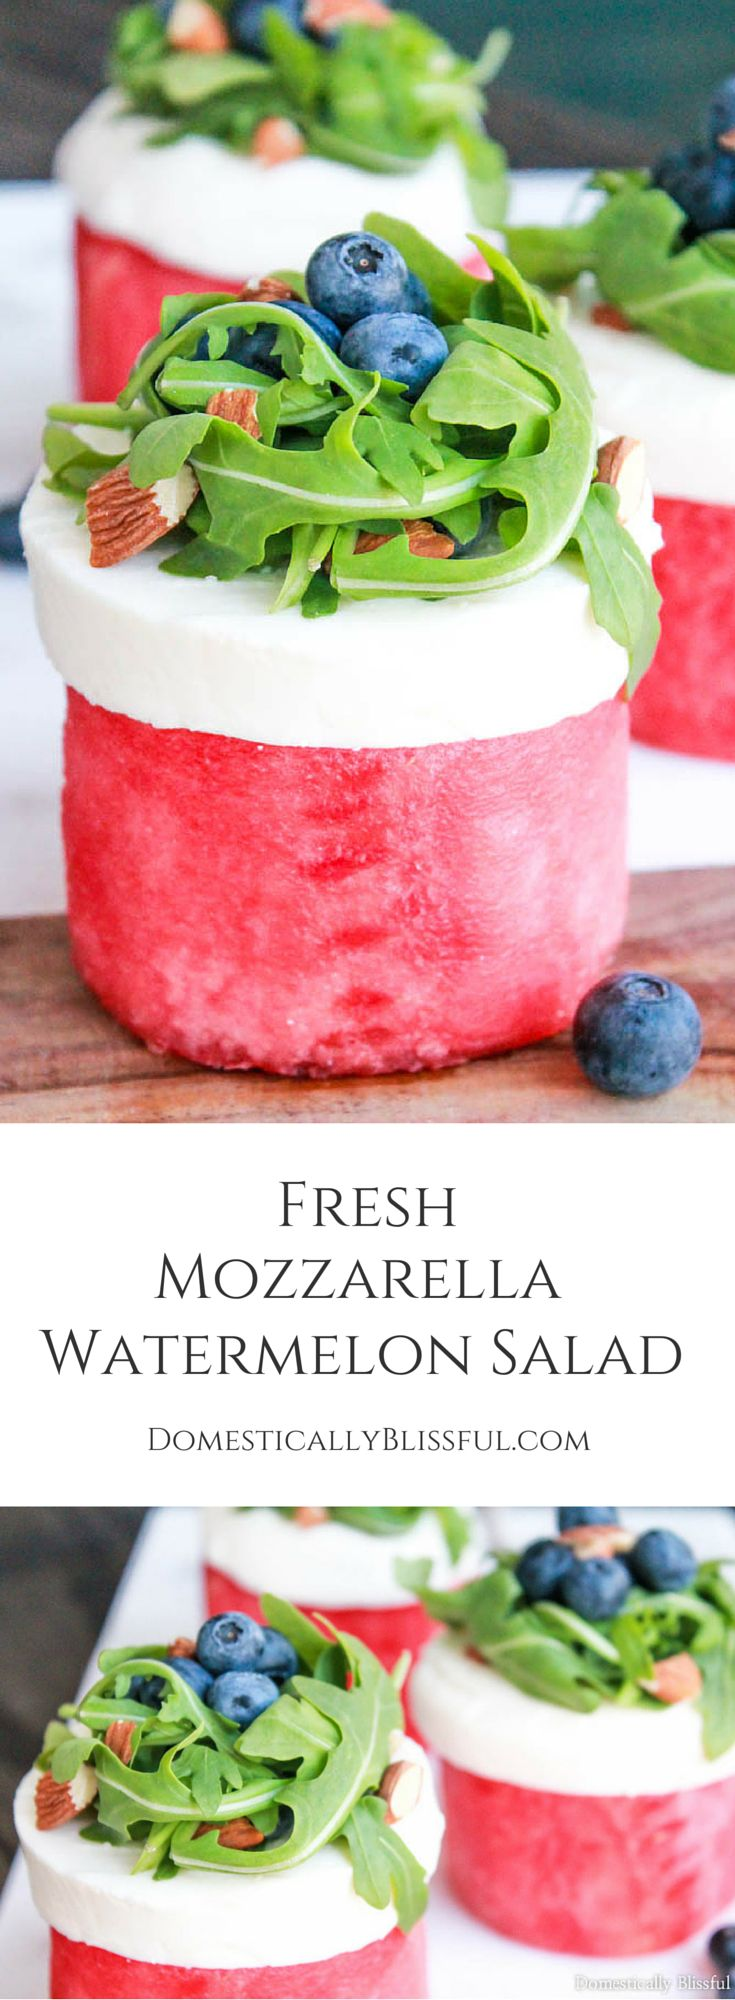 Fresh Mozzarella Watermelon Salad is a delicious way to enjoy a few of your favorite flavors of summer! #FreshisBest #StellaCheeses #QualitySince1923 #ad #sponsored @stellacheese